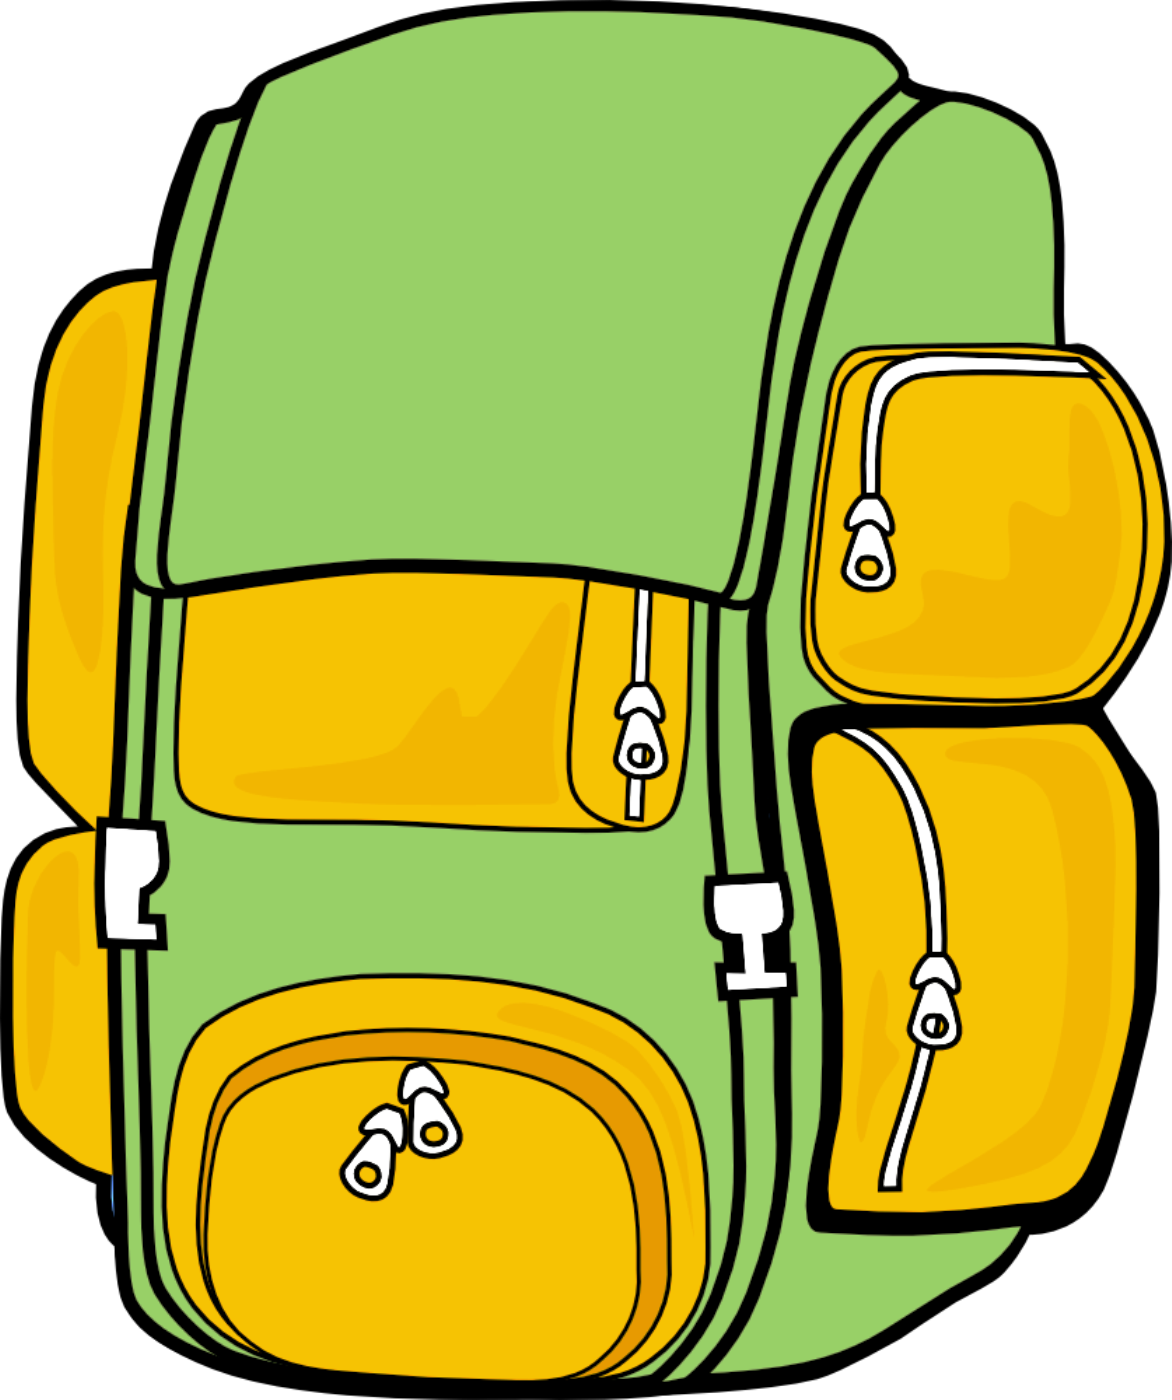 School backpack clipart picture black and white stock Backpack clipart beautystars - Clipartix picture black and white stock